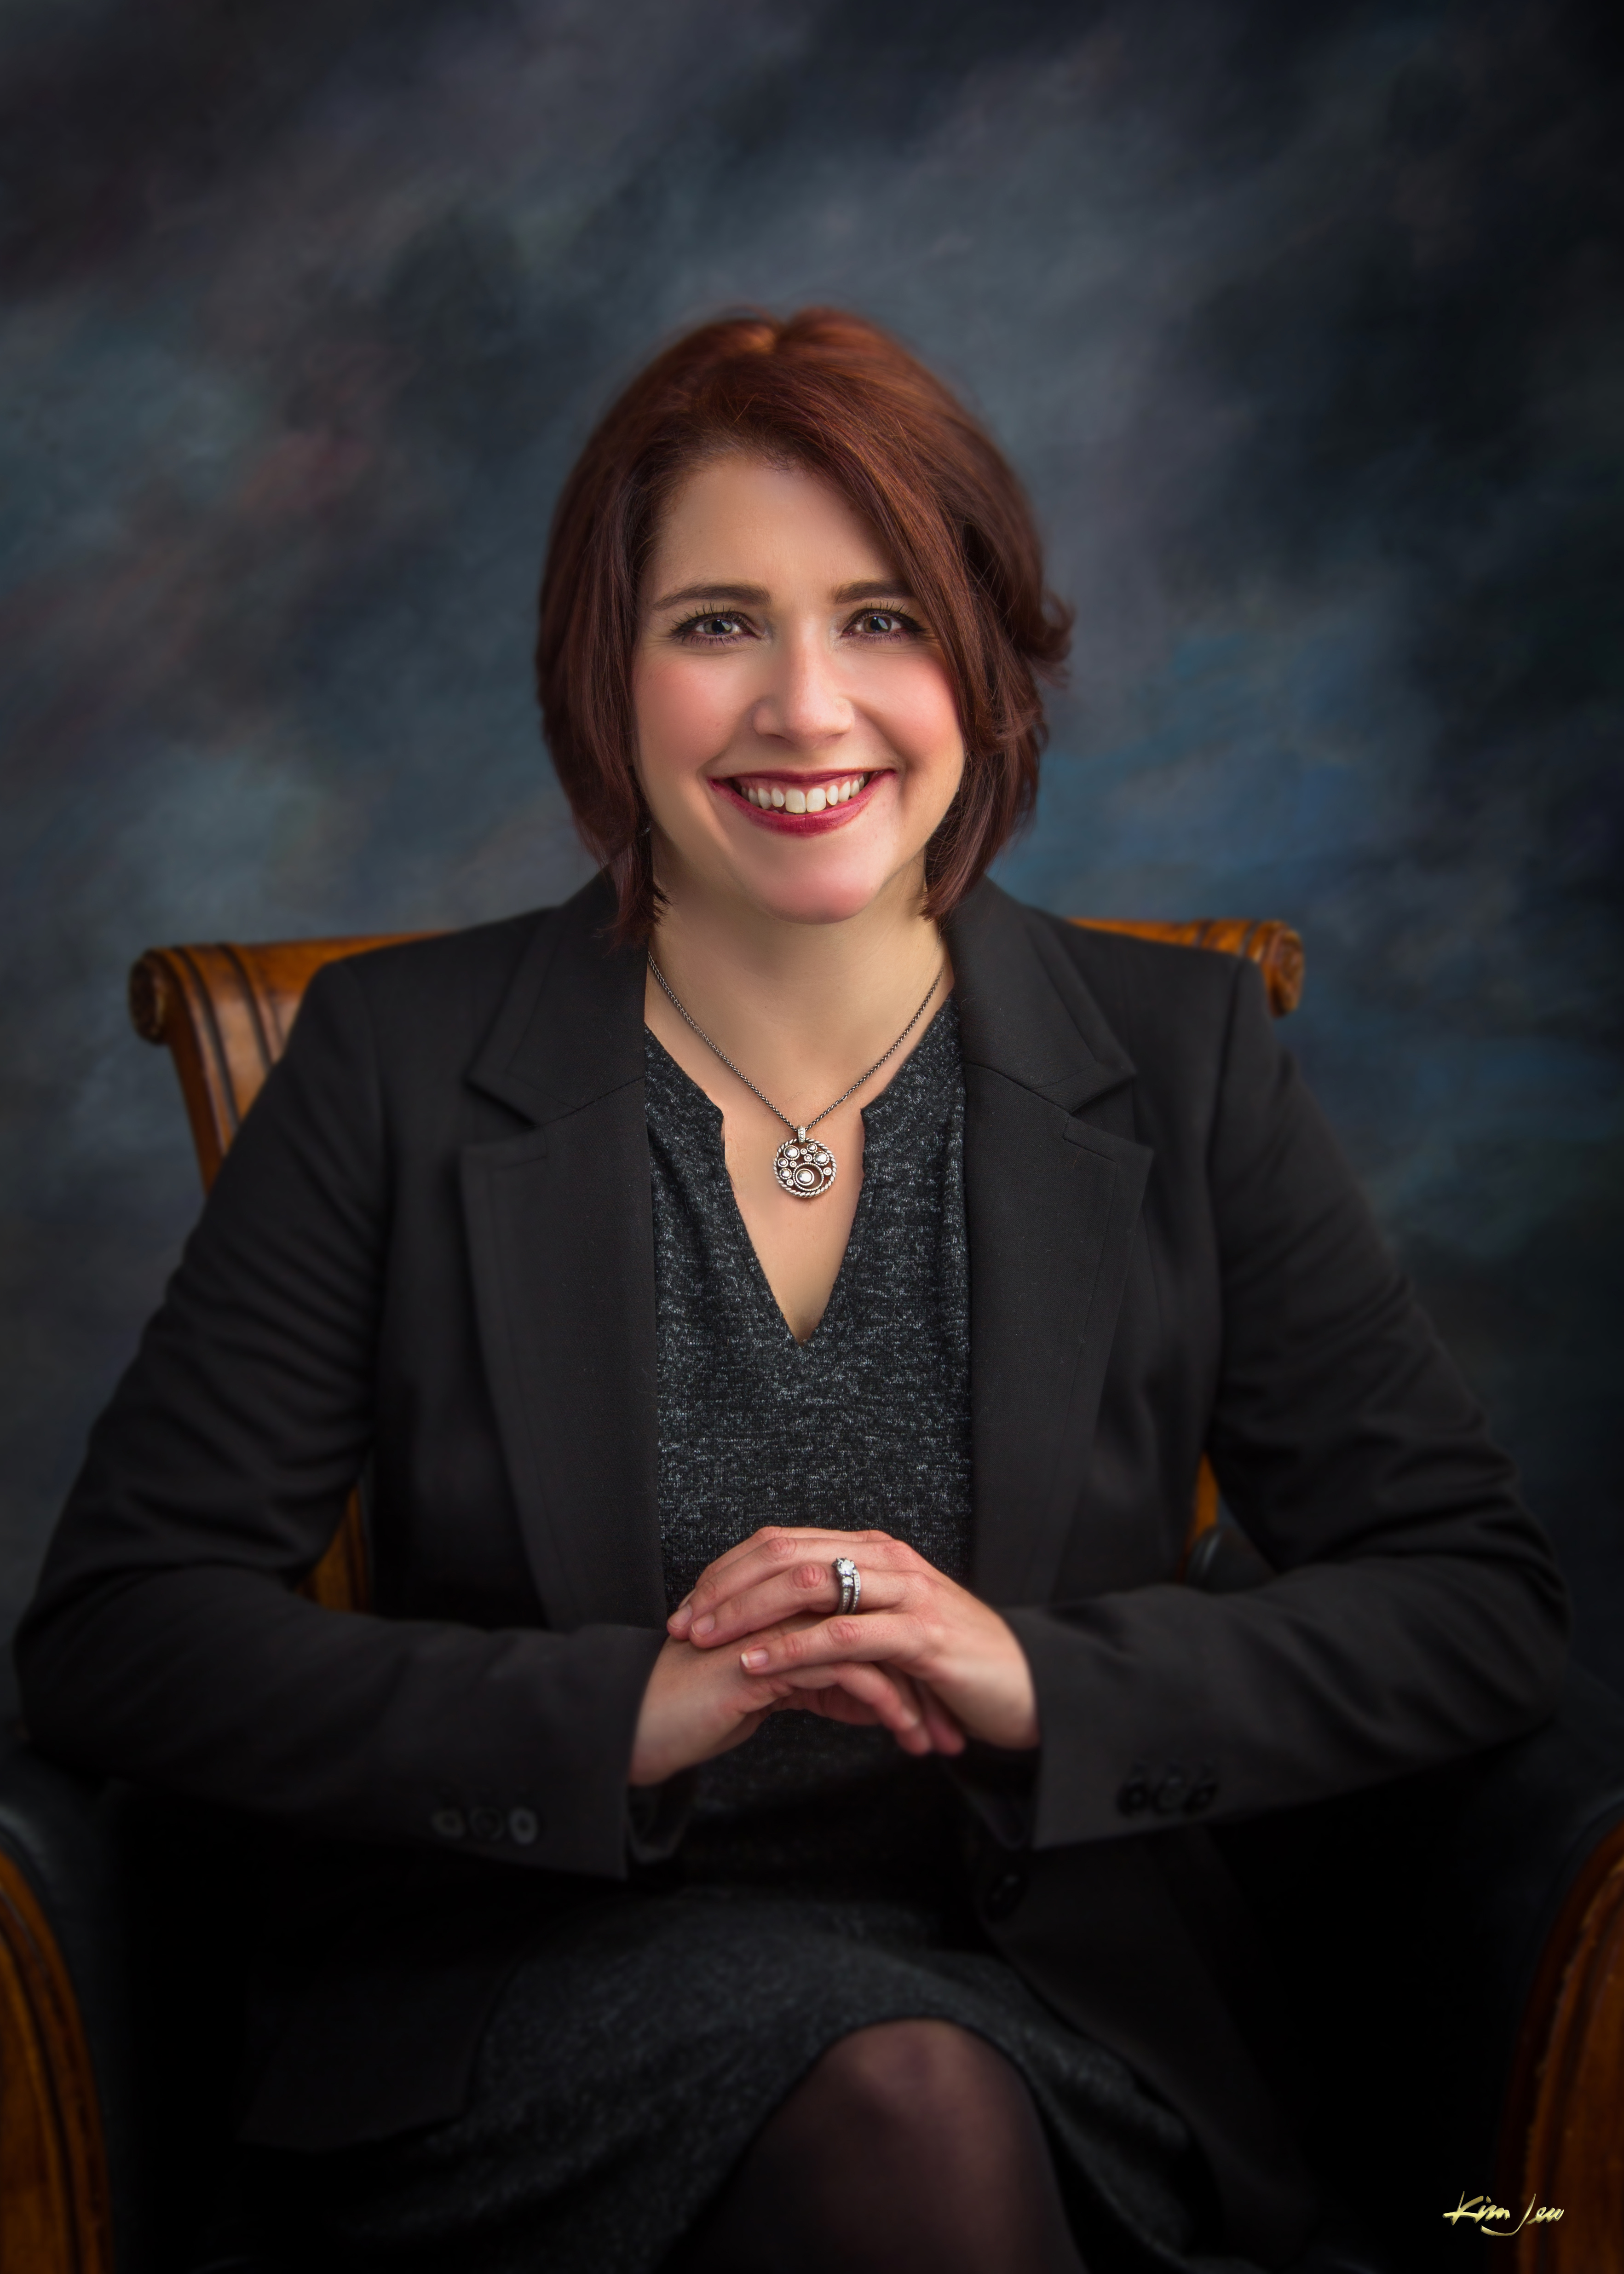 Councilor Bassan Official Headshot